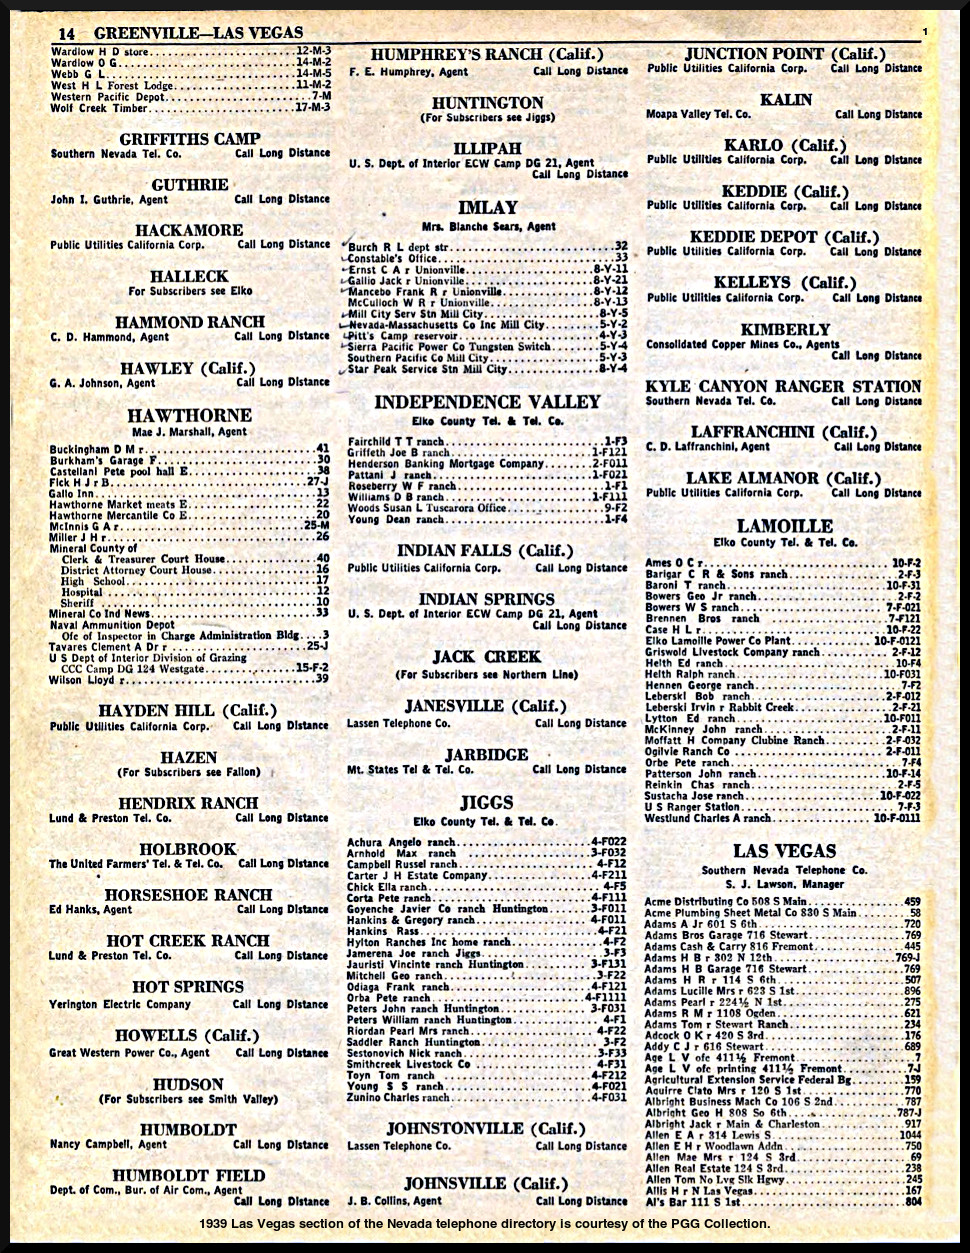 1939 Las Vegas Telephone Listings